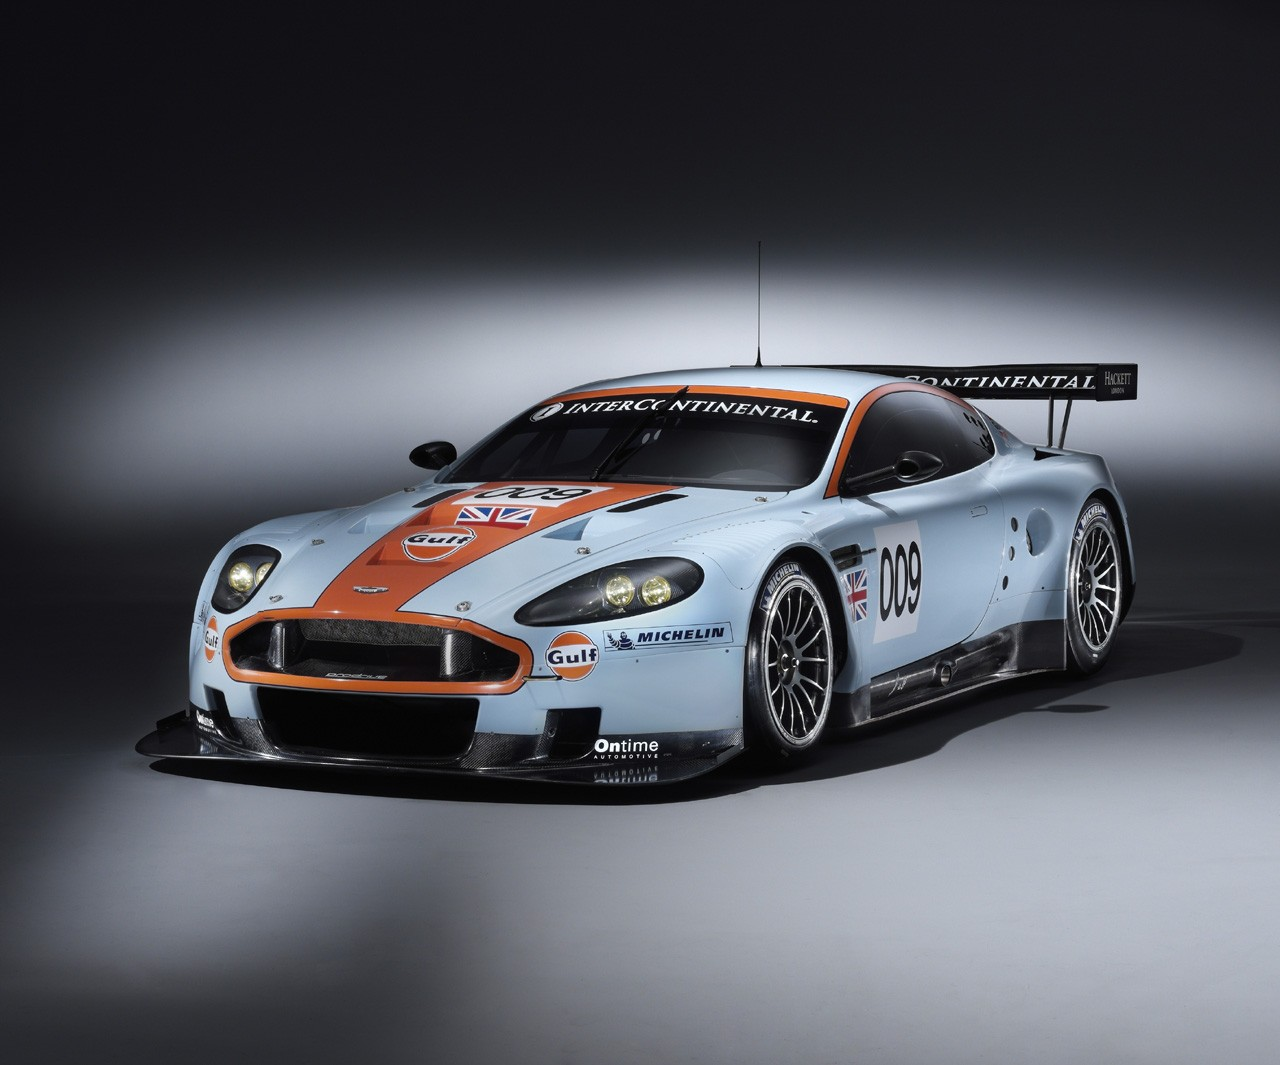 Aston Martin DBR9 Screensavers For Windows